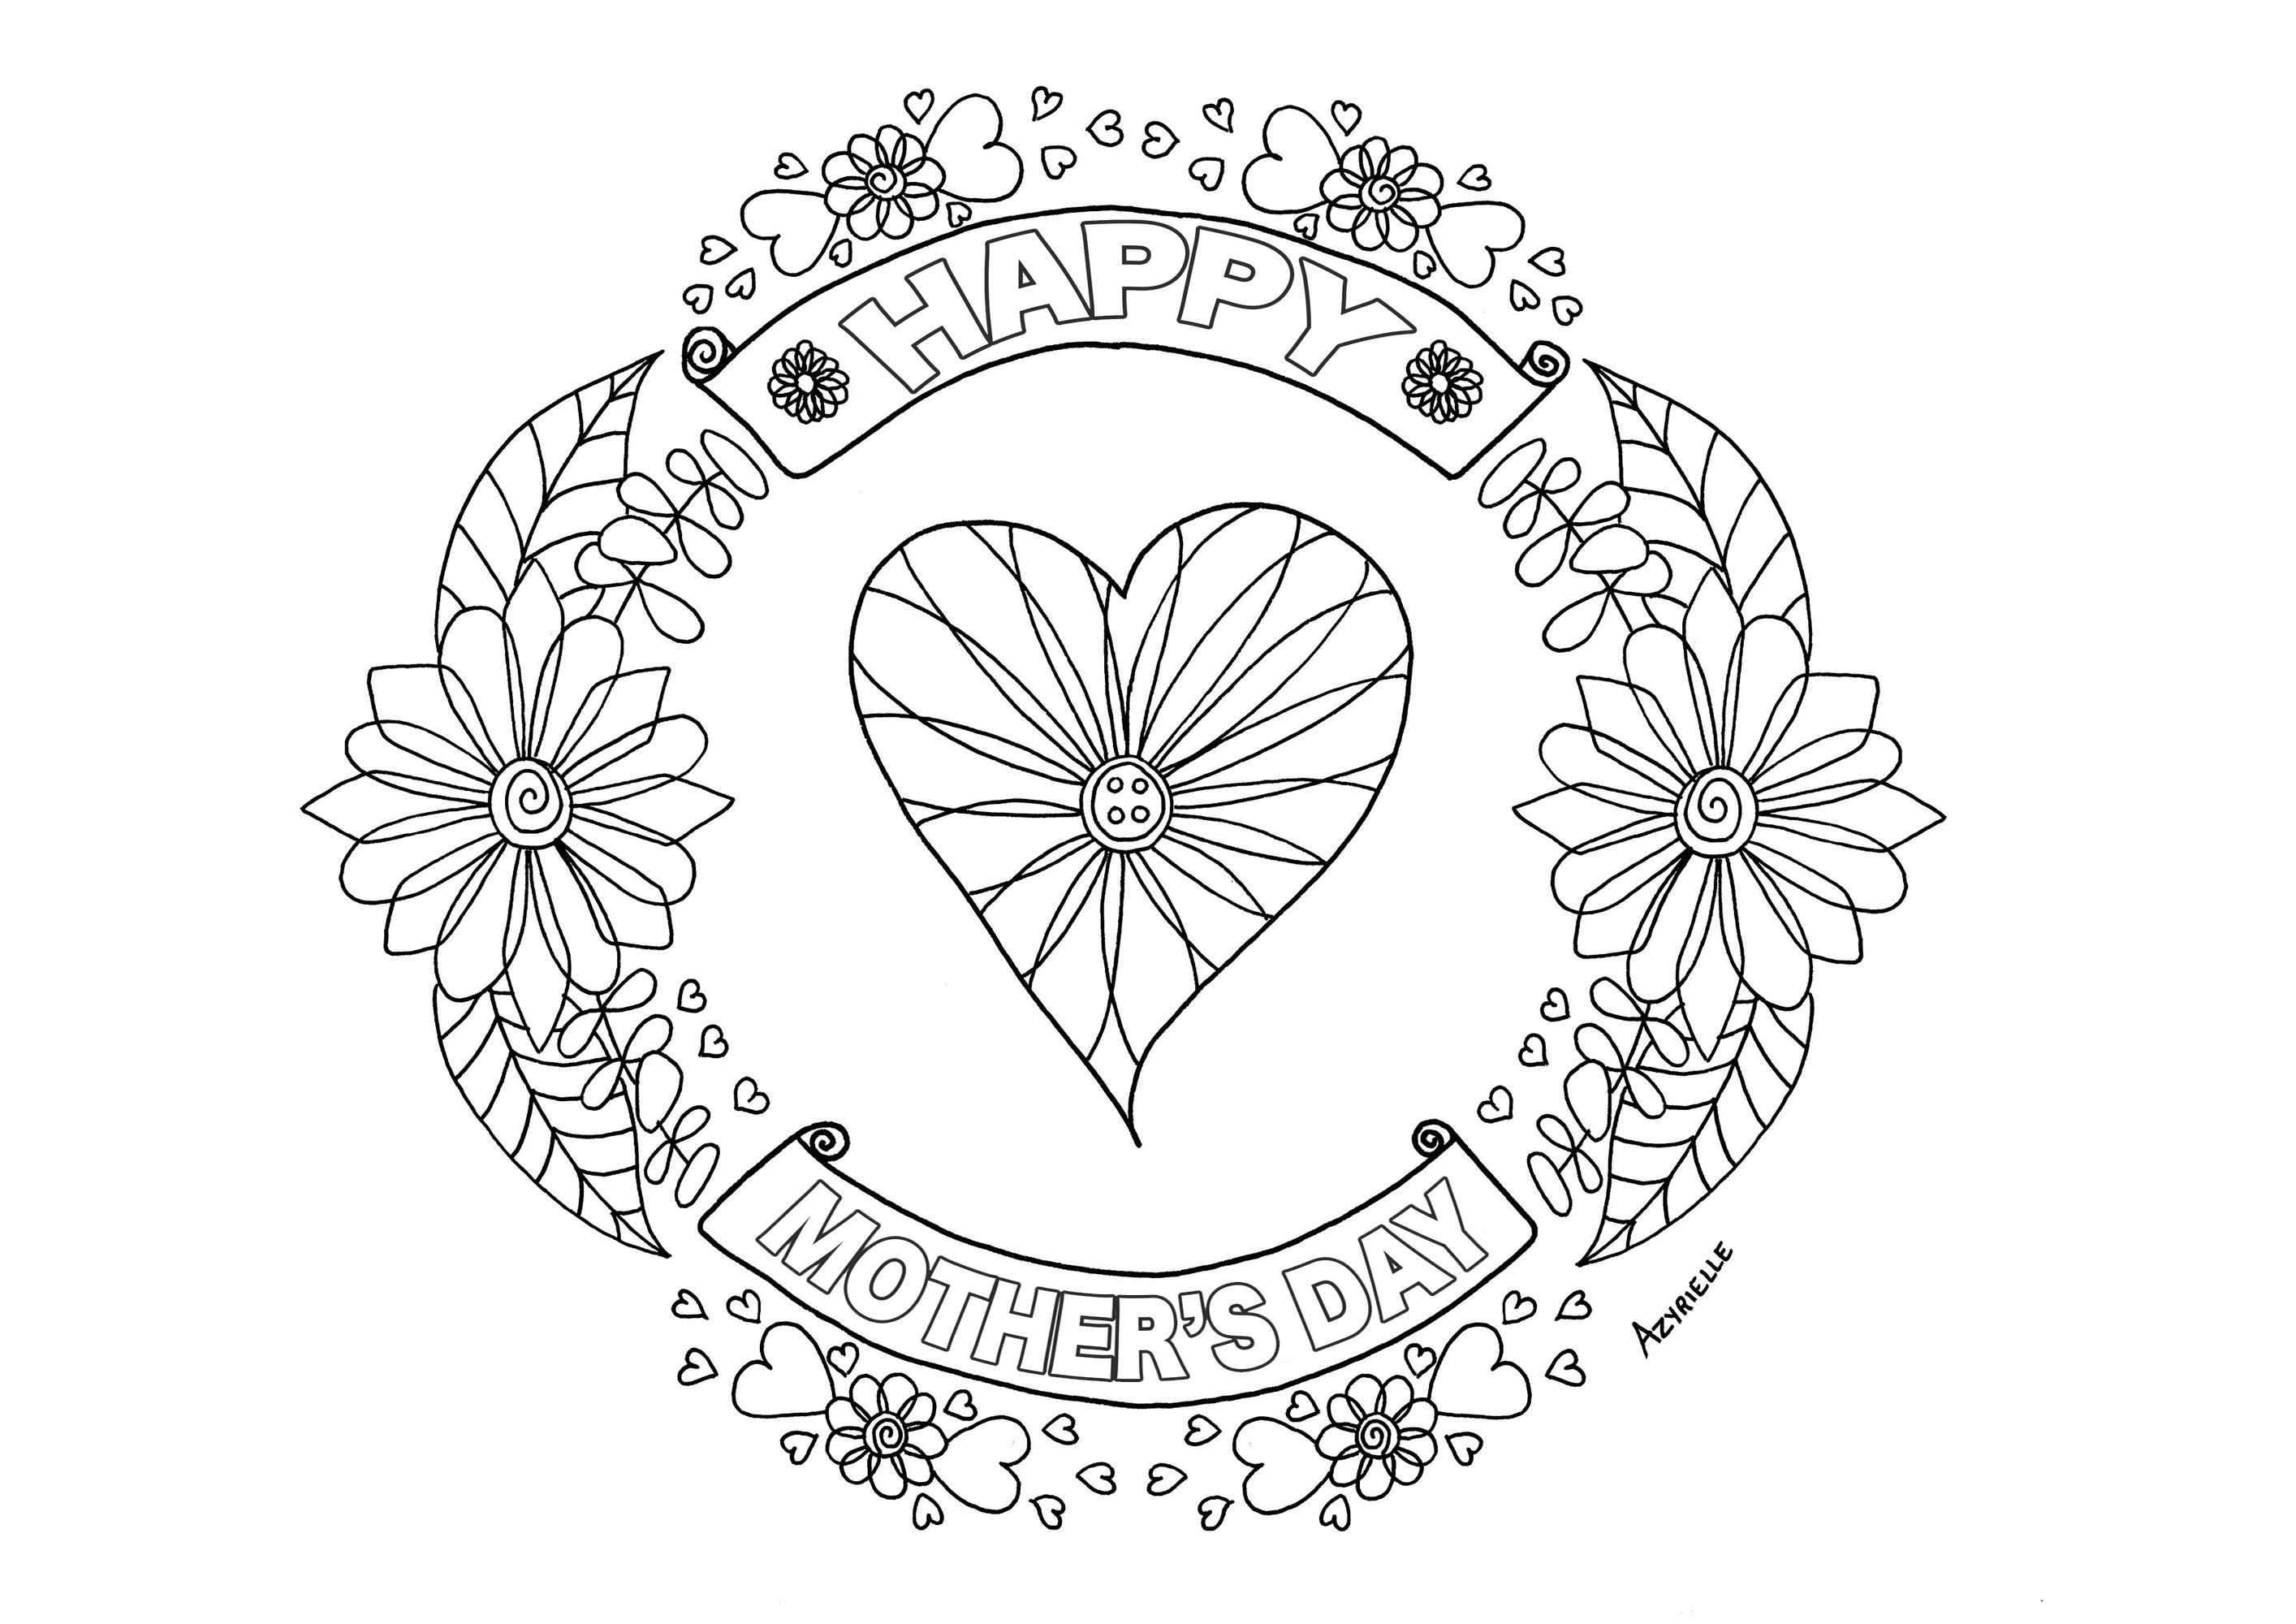 Happy Mother's day coloring page : heart and flowered patterns